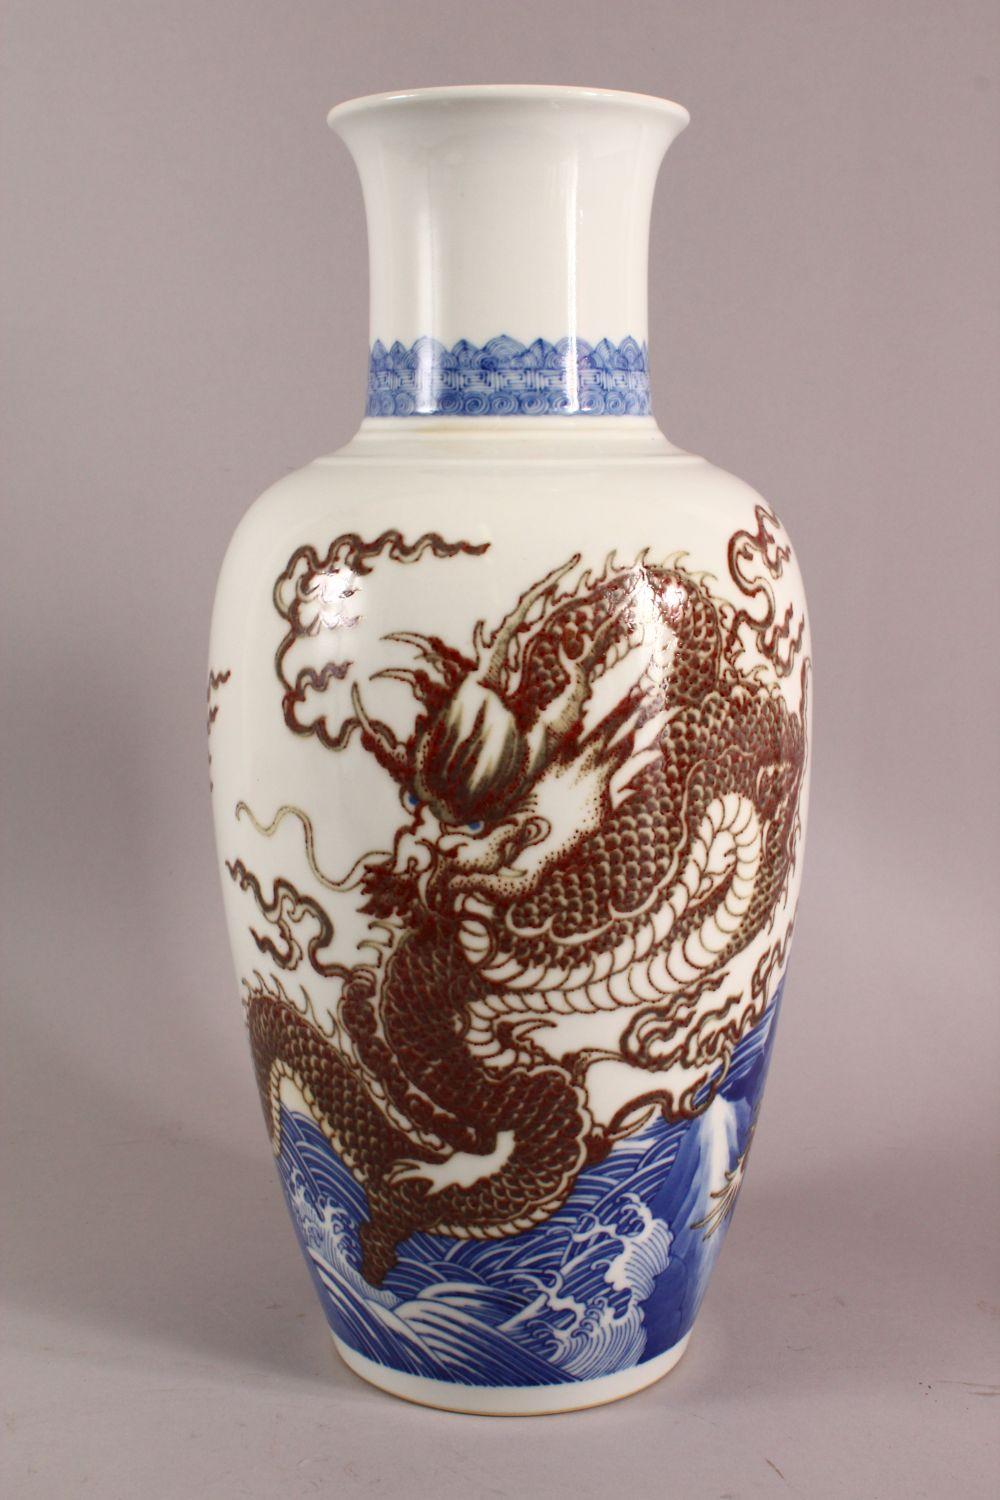 A LARGE CHINESE UNDERGLAZE BLUE & COPPER RED PORCELAIN VASE, decorated with dragons amongst waves, - Image 4 of 7